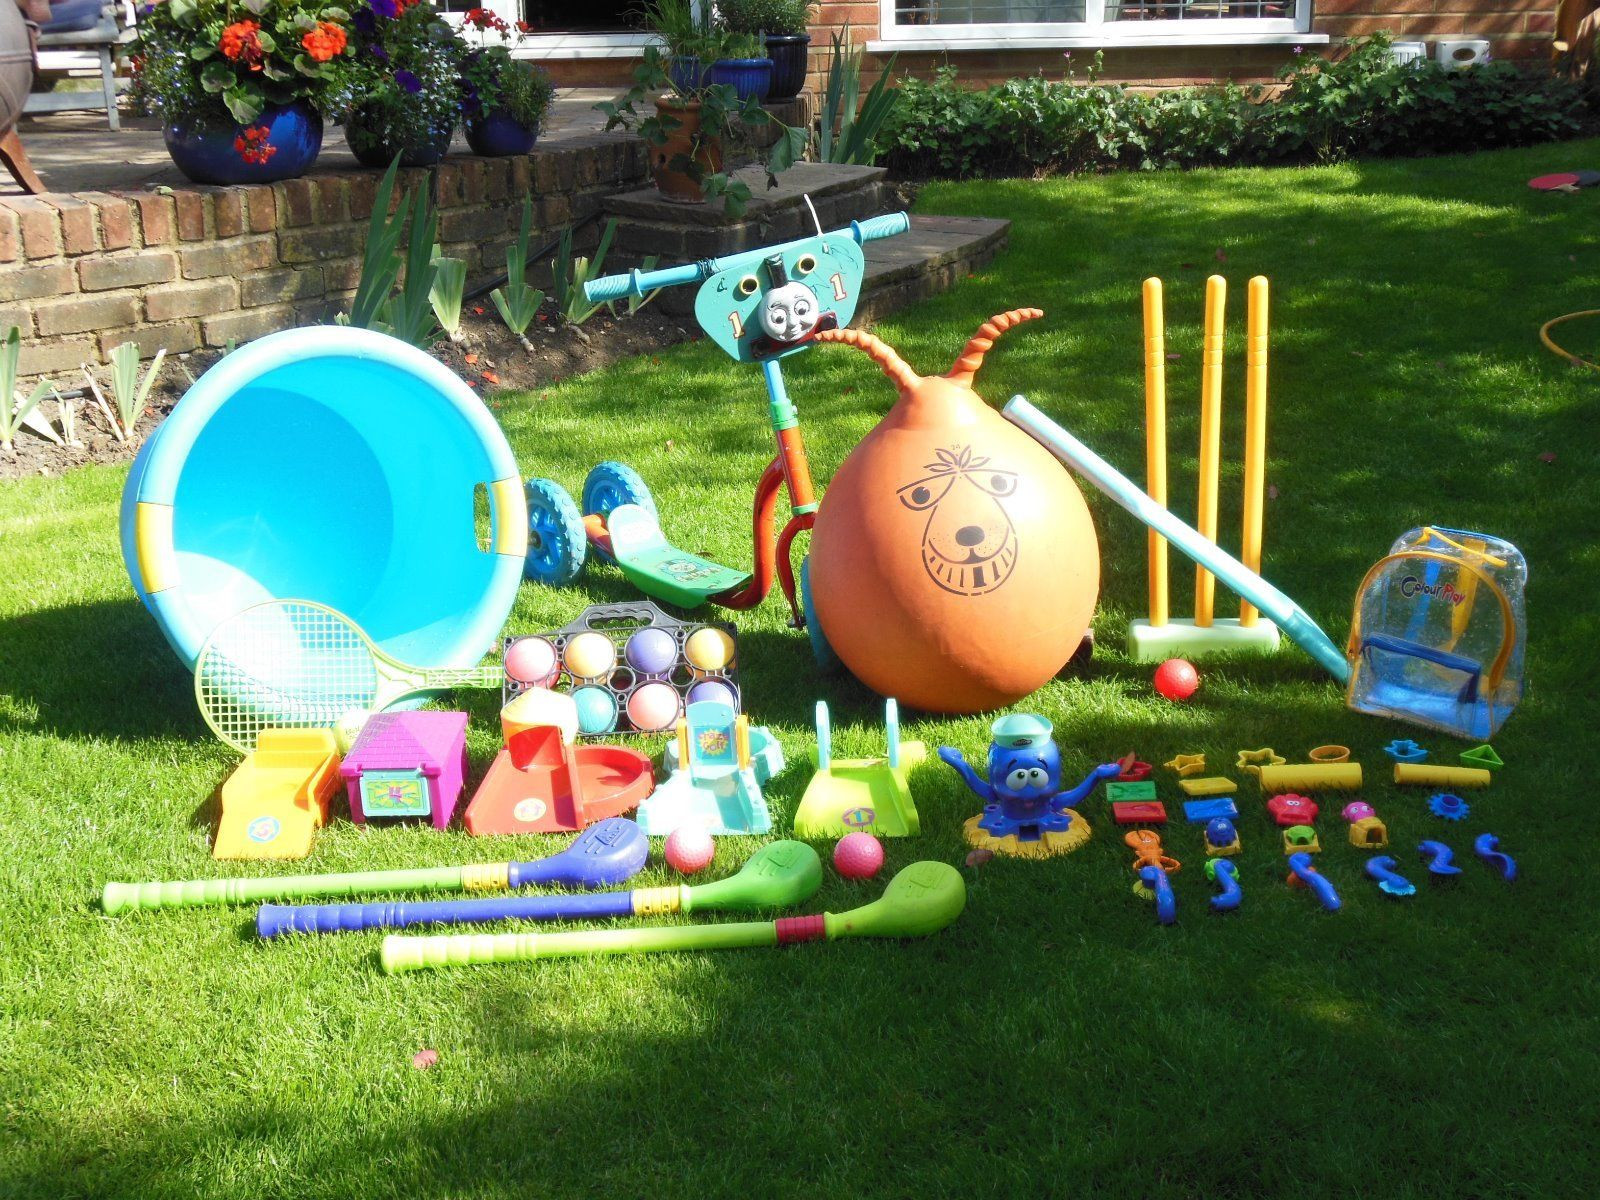 Cool Outdoor Toys For Kids  How to Clean Your Kids' Outdoor Toys • DIY House Decor